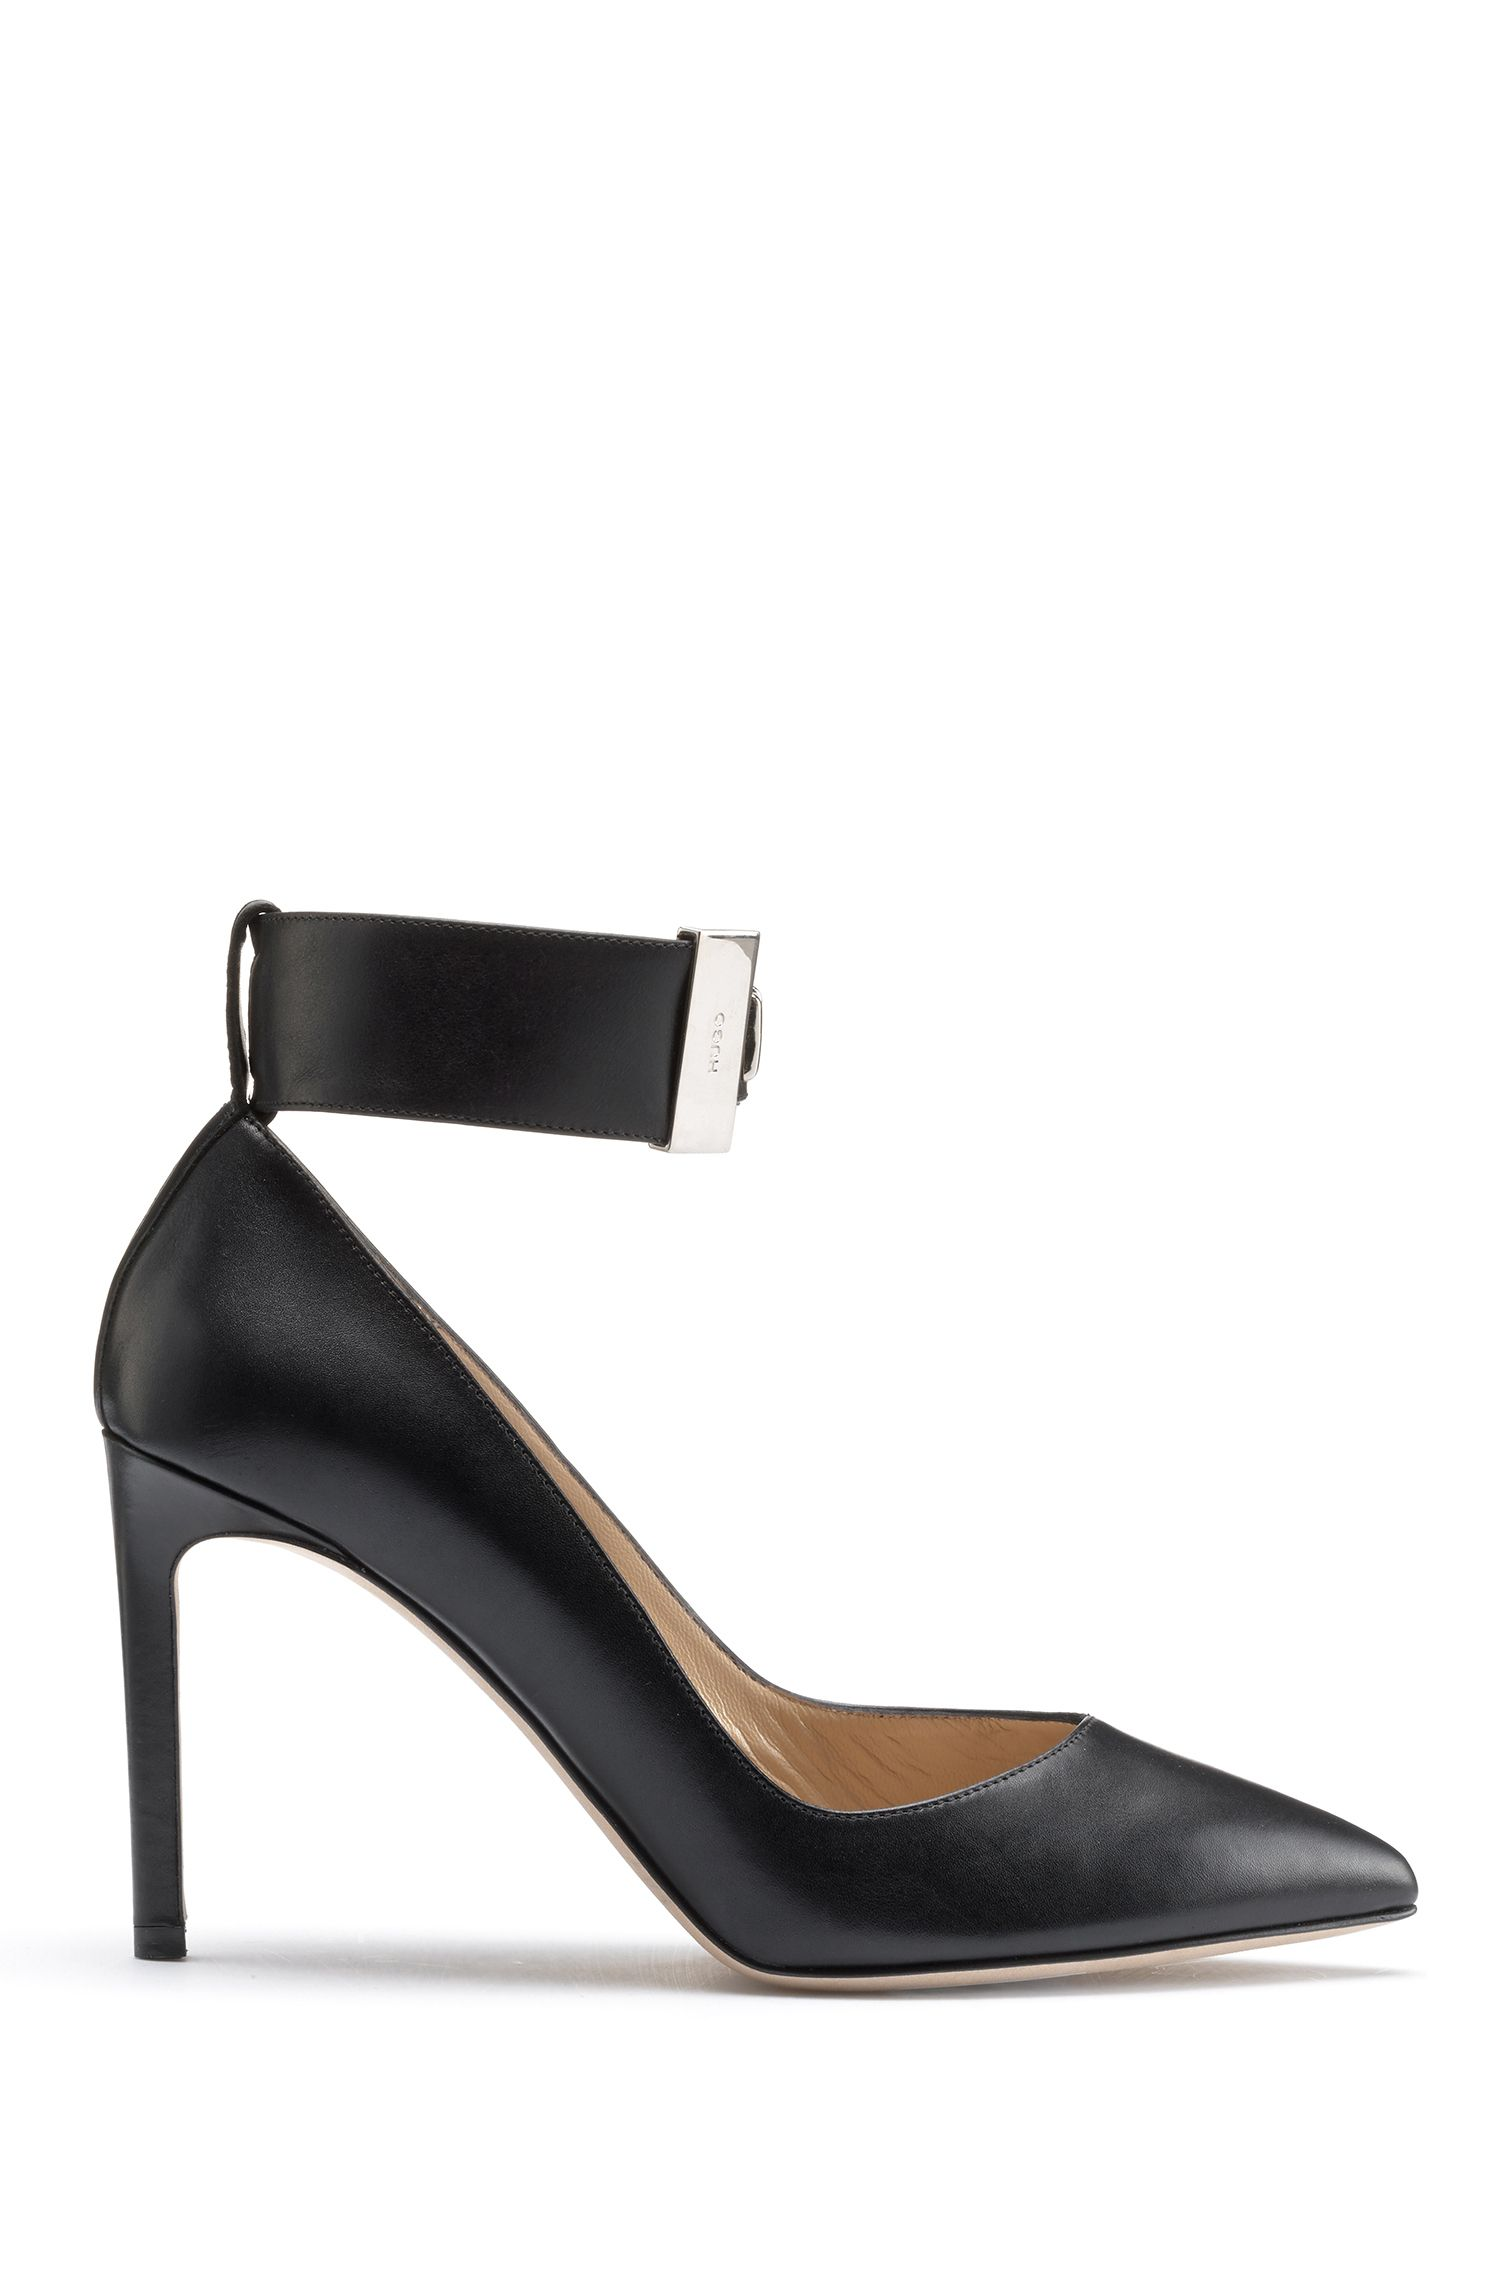 Calf leather pumps with studded ankle strap, Black